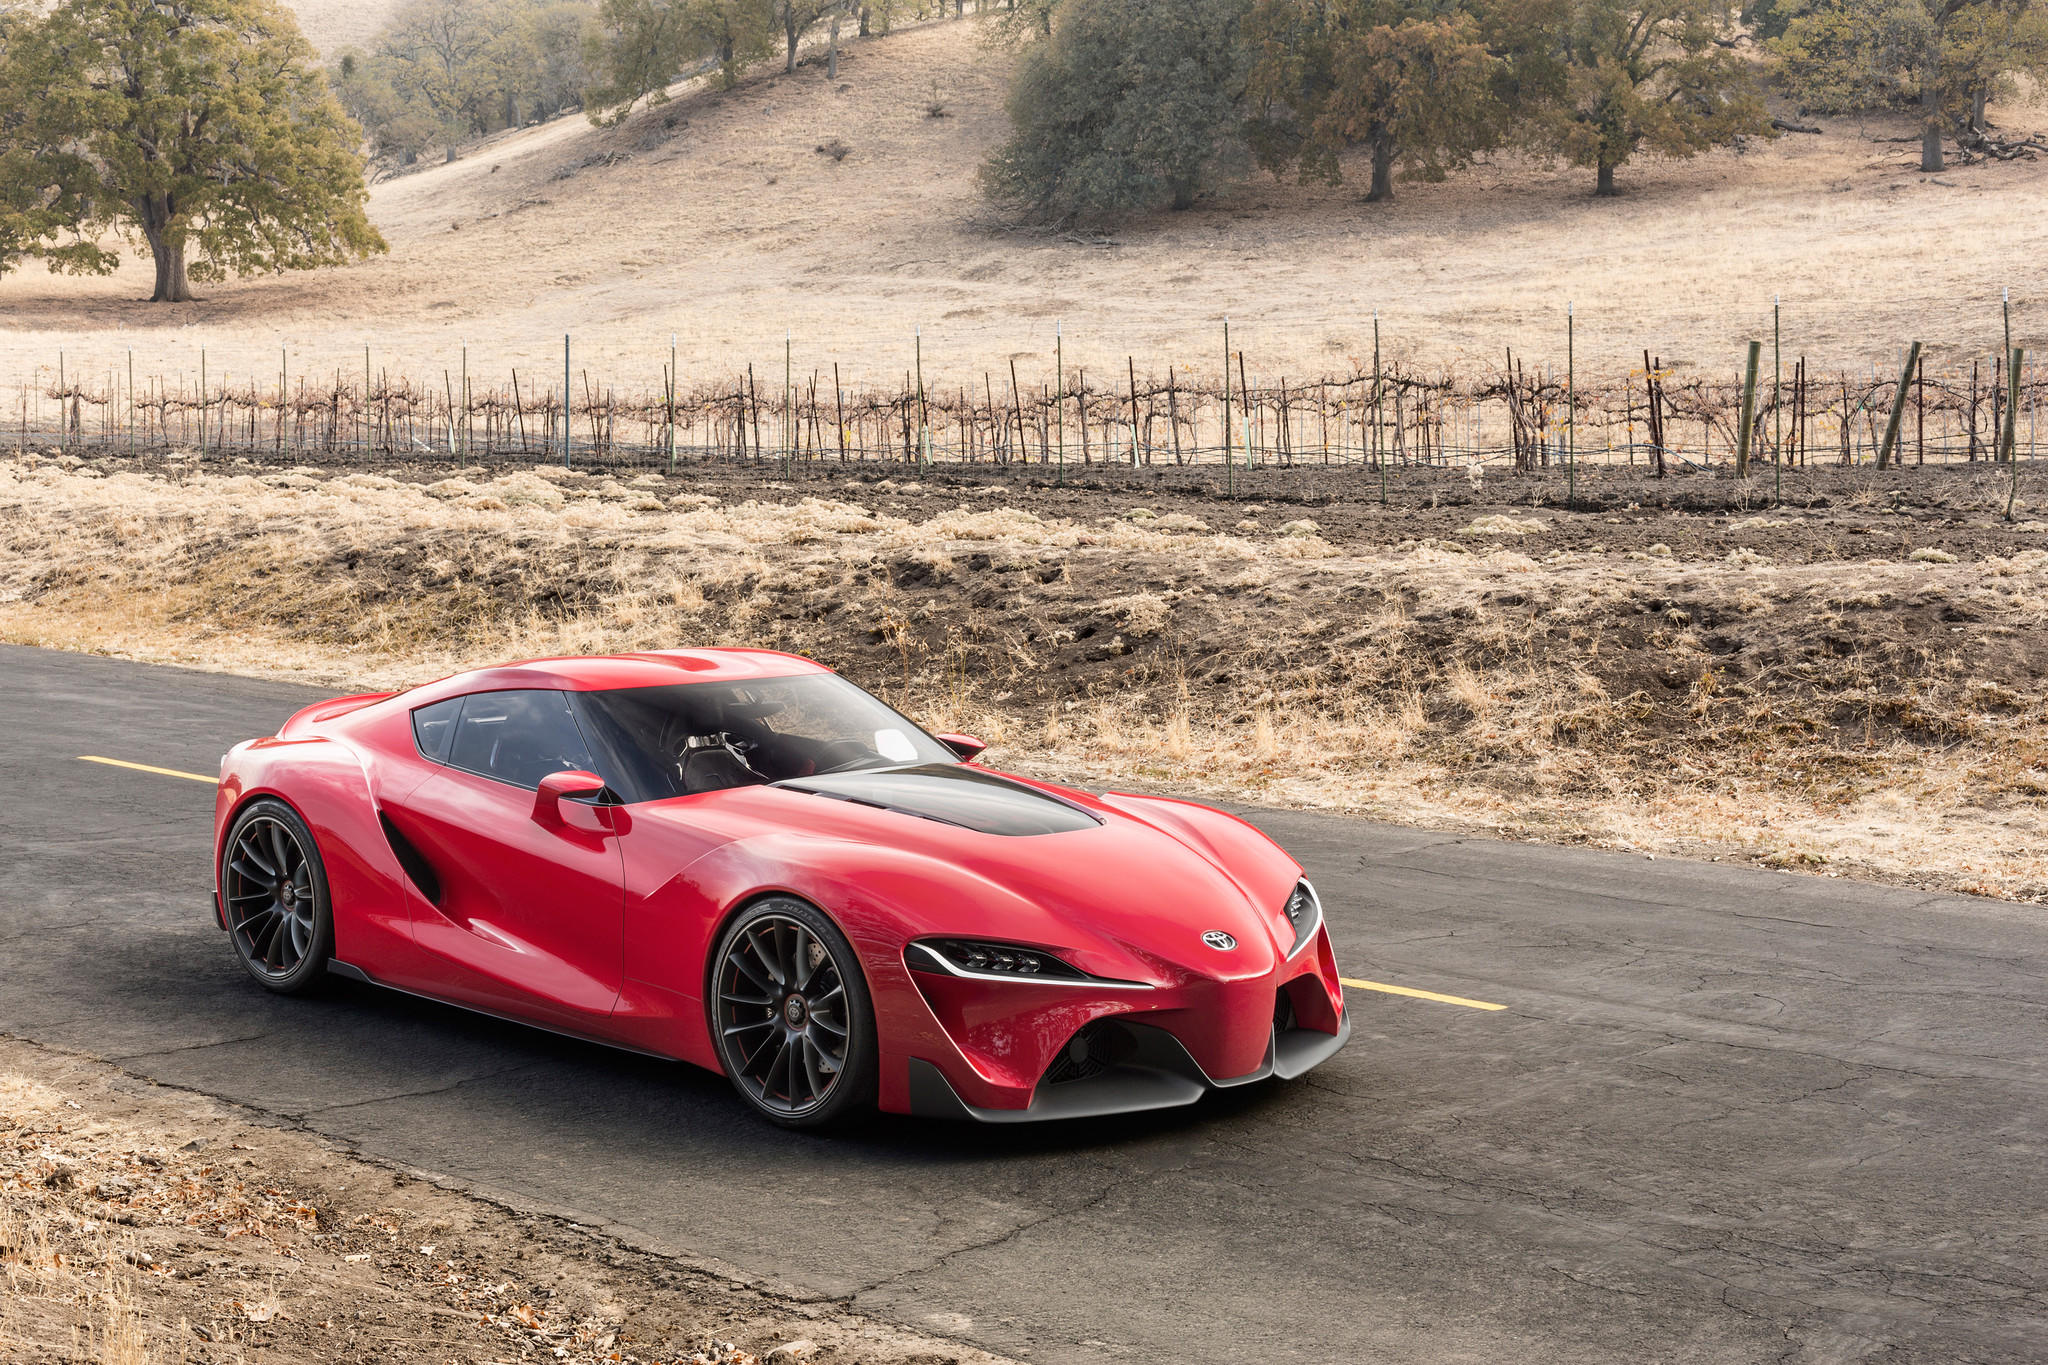 Detroit Auto Show: Toyota Debuts The FT-1 Concept -- The